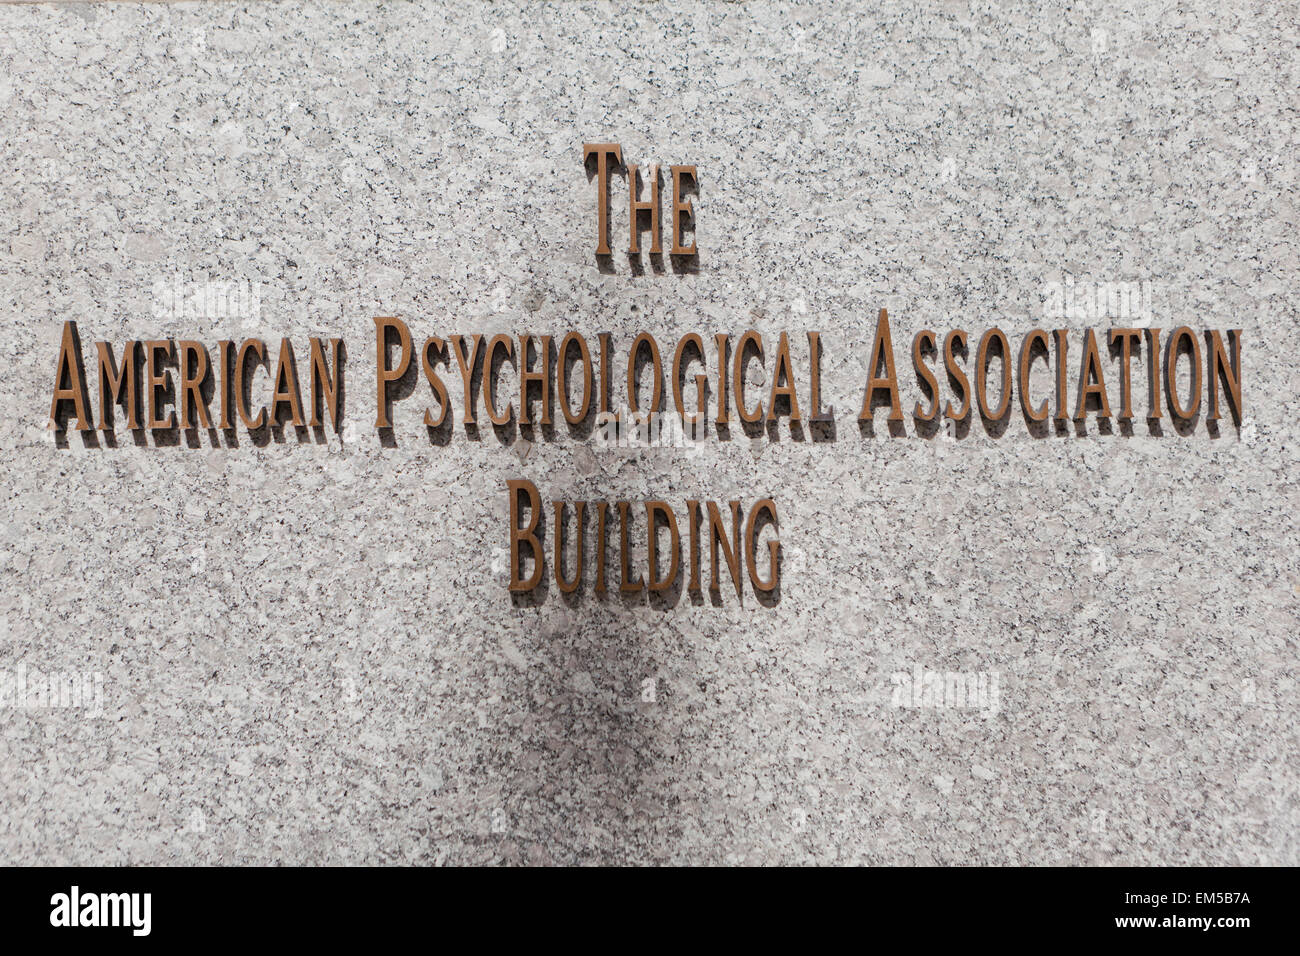 The American Psychological Association - Washington, DC USA - Stock Image